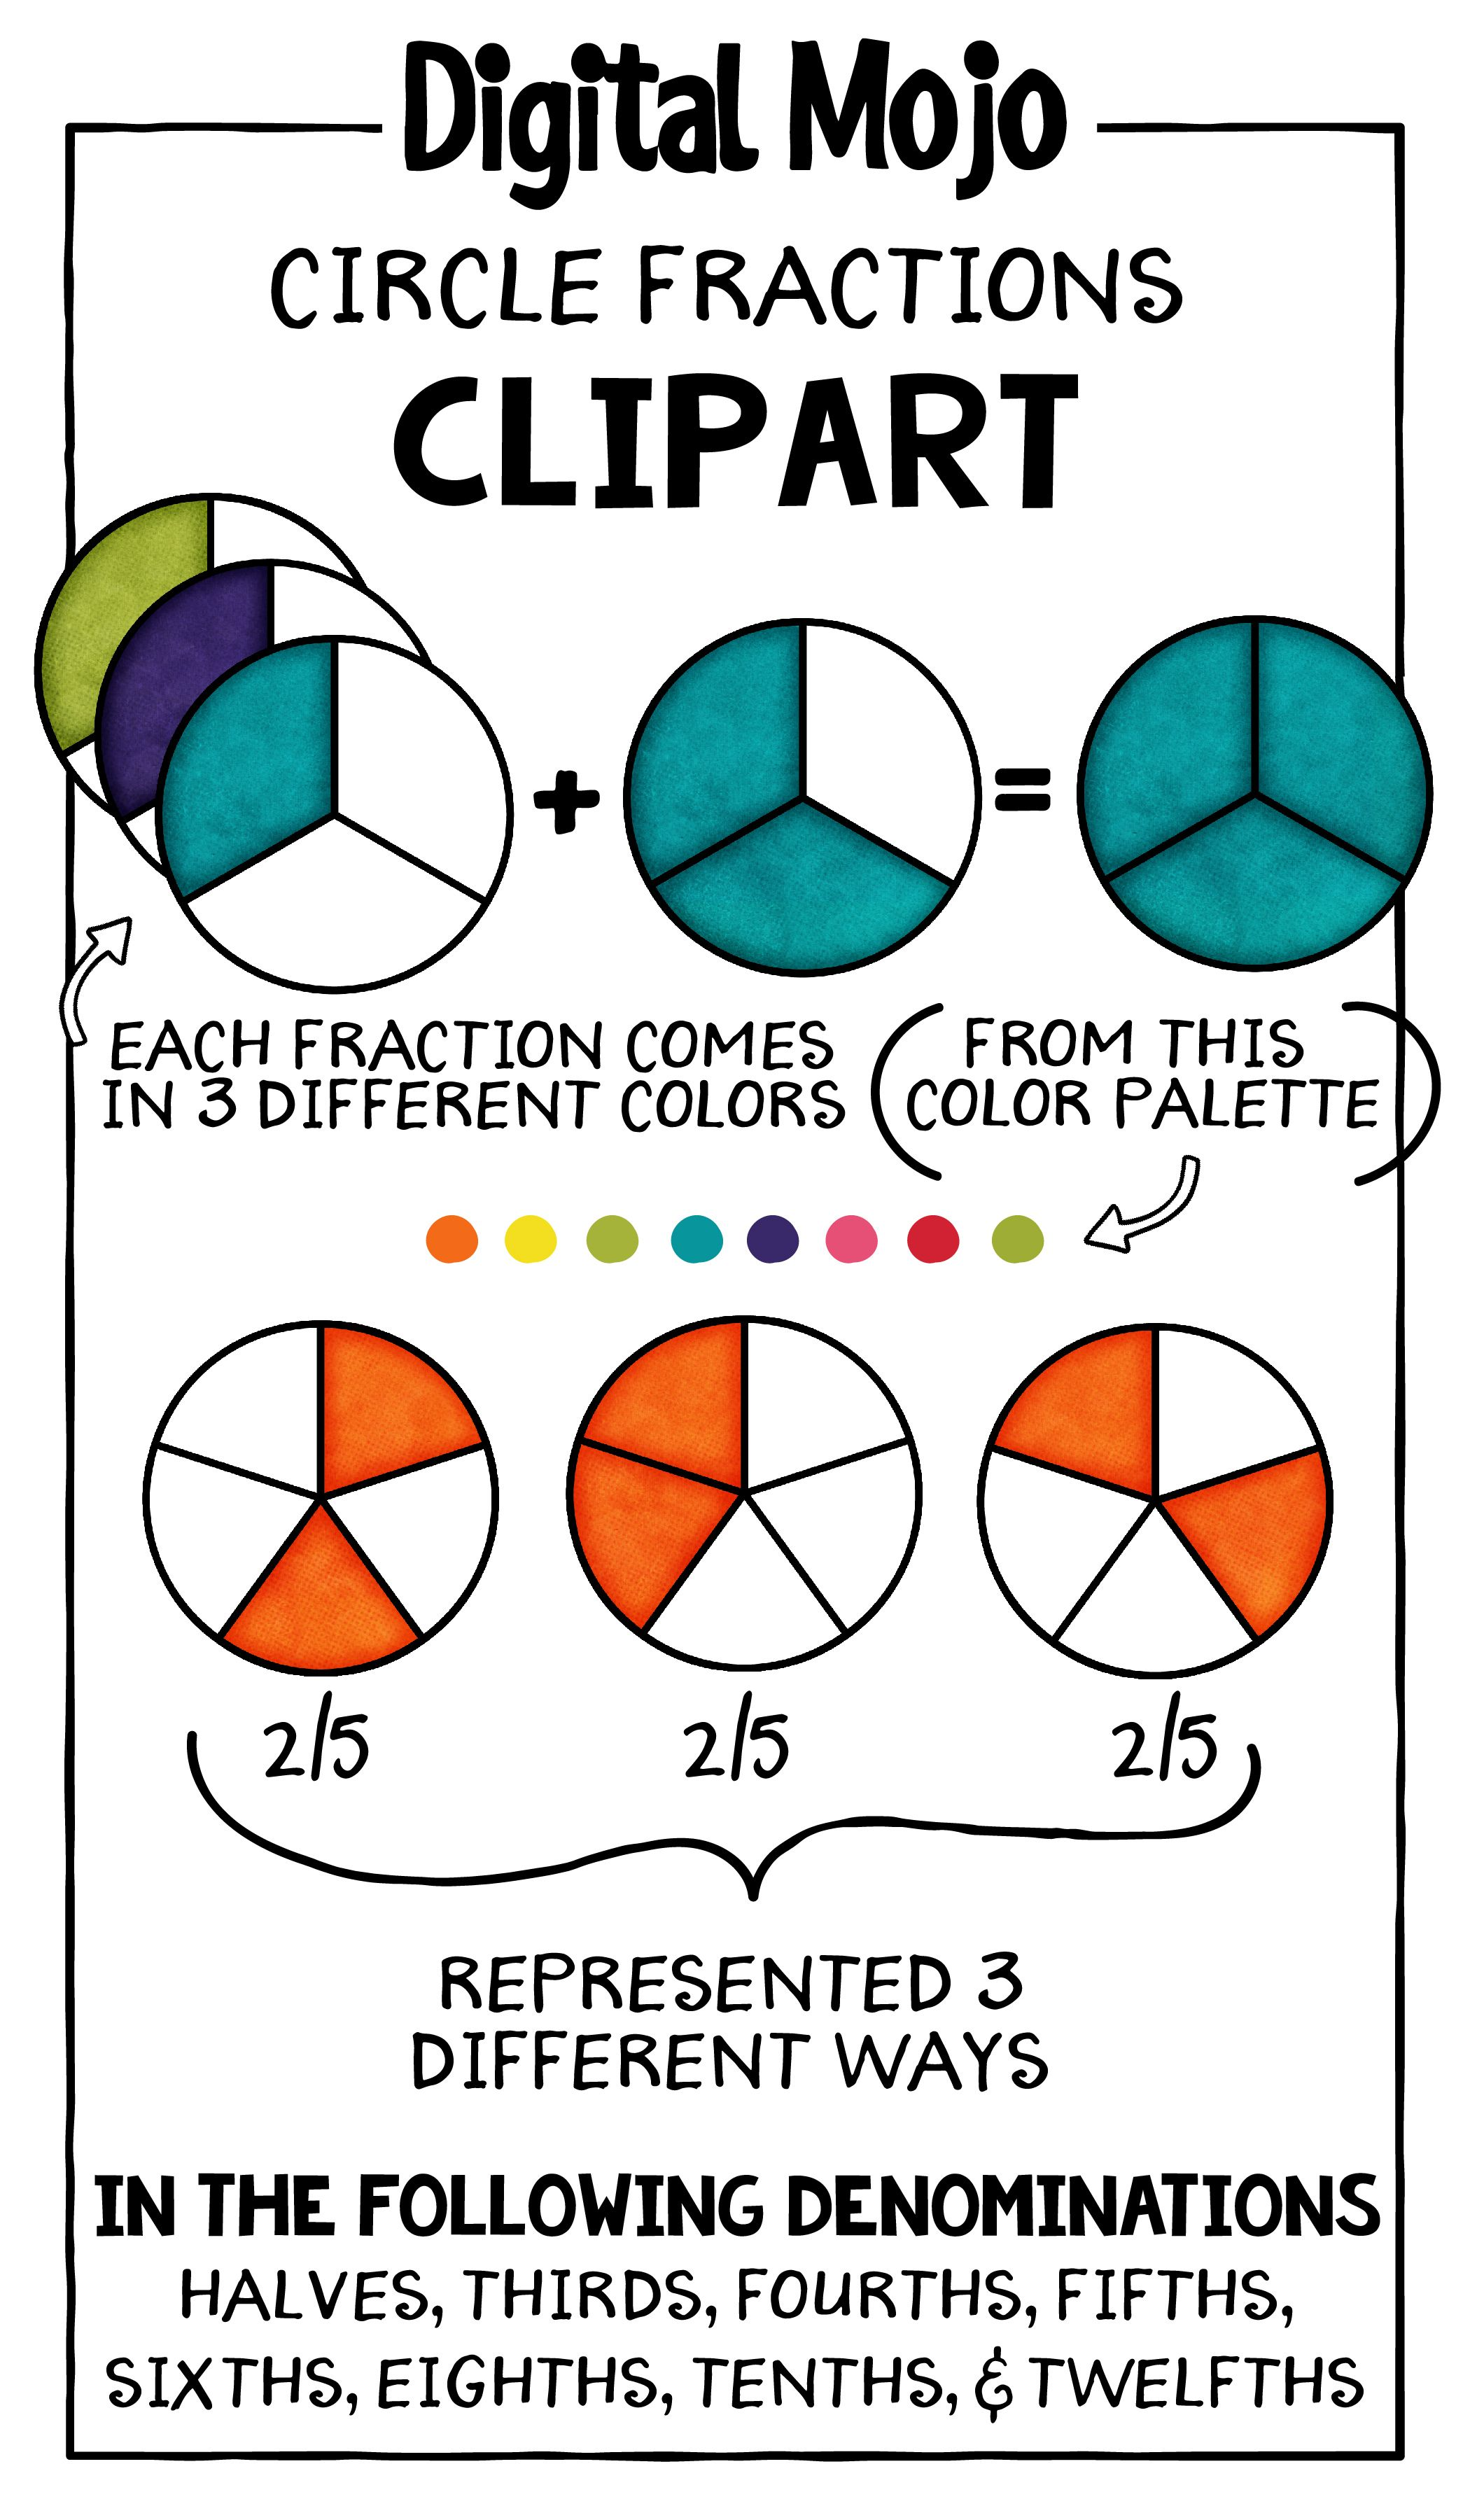 Fraction clipart represented. Circles clip art on